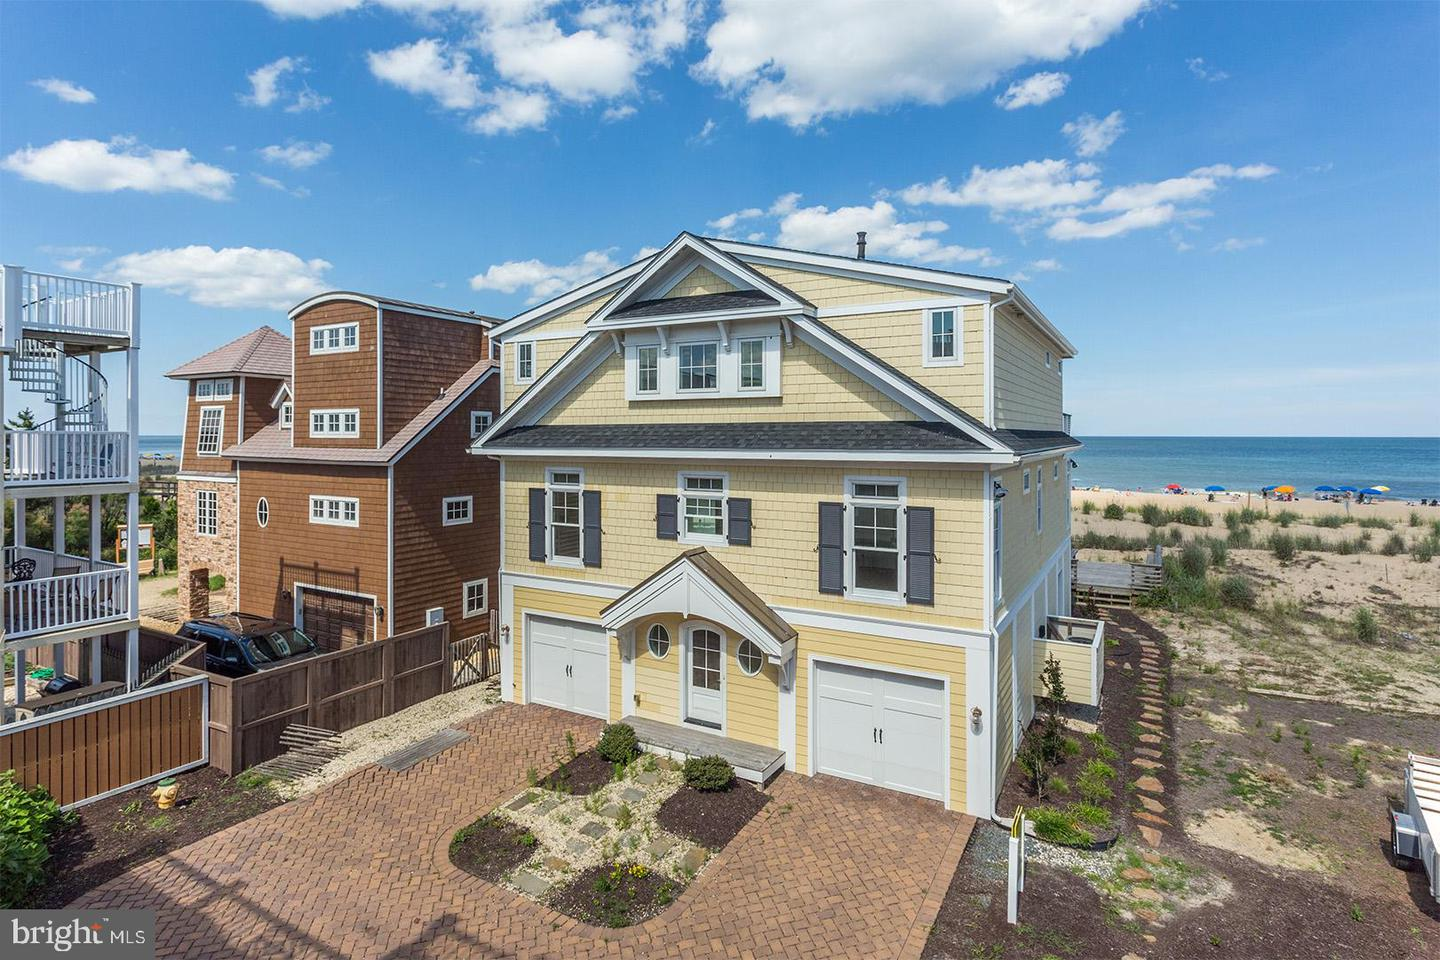 DESU100159-301996936339-2019-09-12-15-11-36 5 Clayton St | Dewey Beach, DE Real Estate For Sale | MLS# Desu100159  - David T. King Realtor